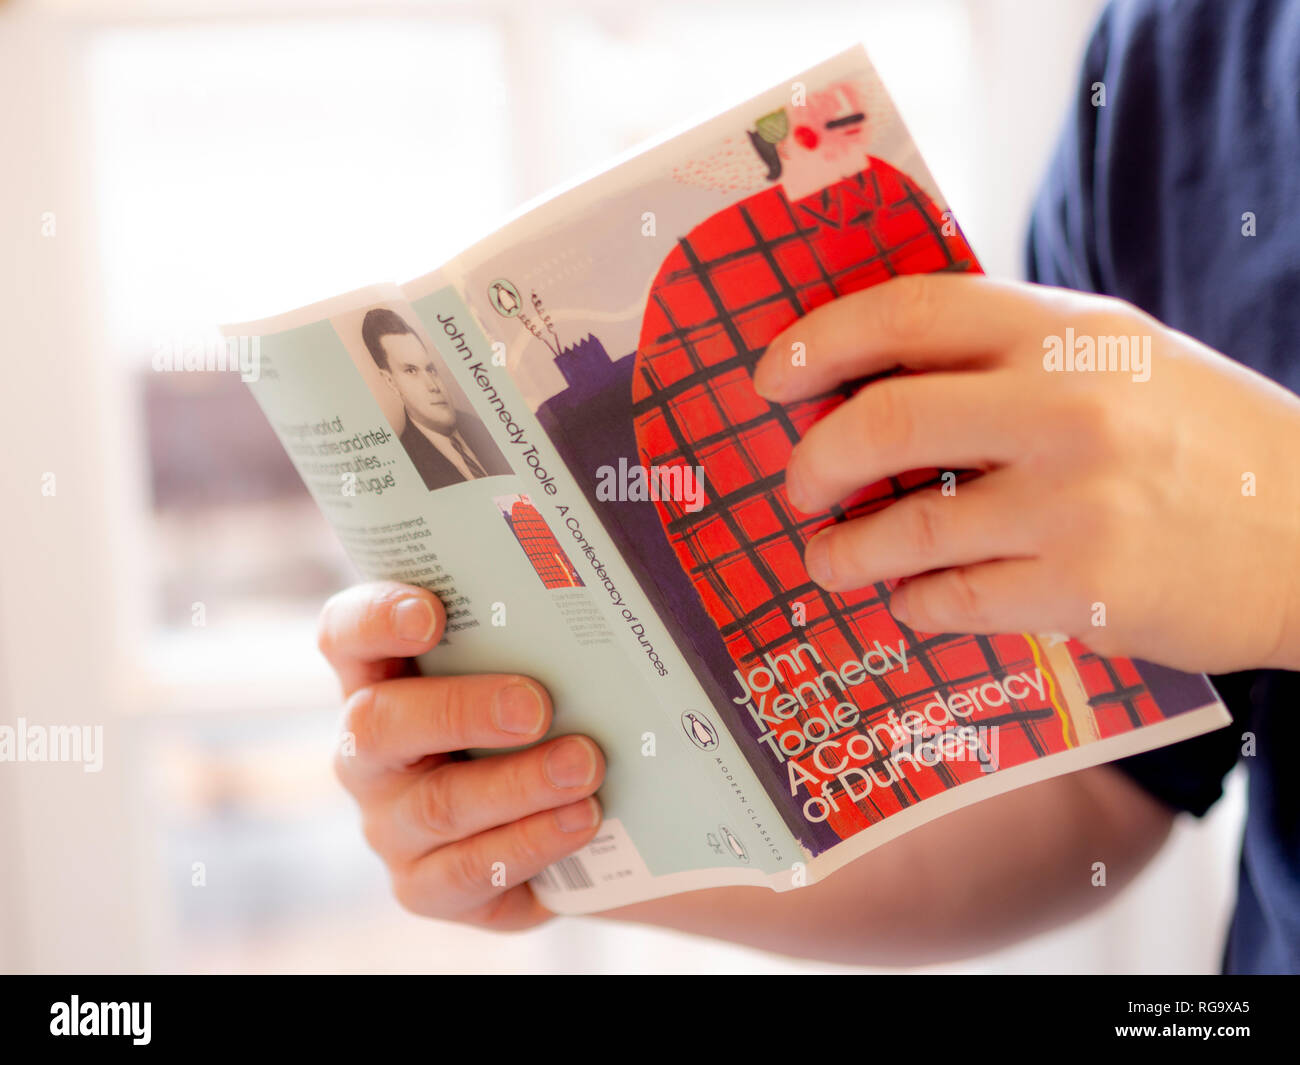 Male hands holding Book: A Confederacy of Dunces by John Kennedy Toole. Published by Penguin Modern Classics. - Stock Image